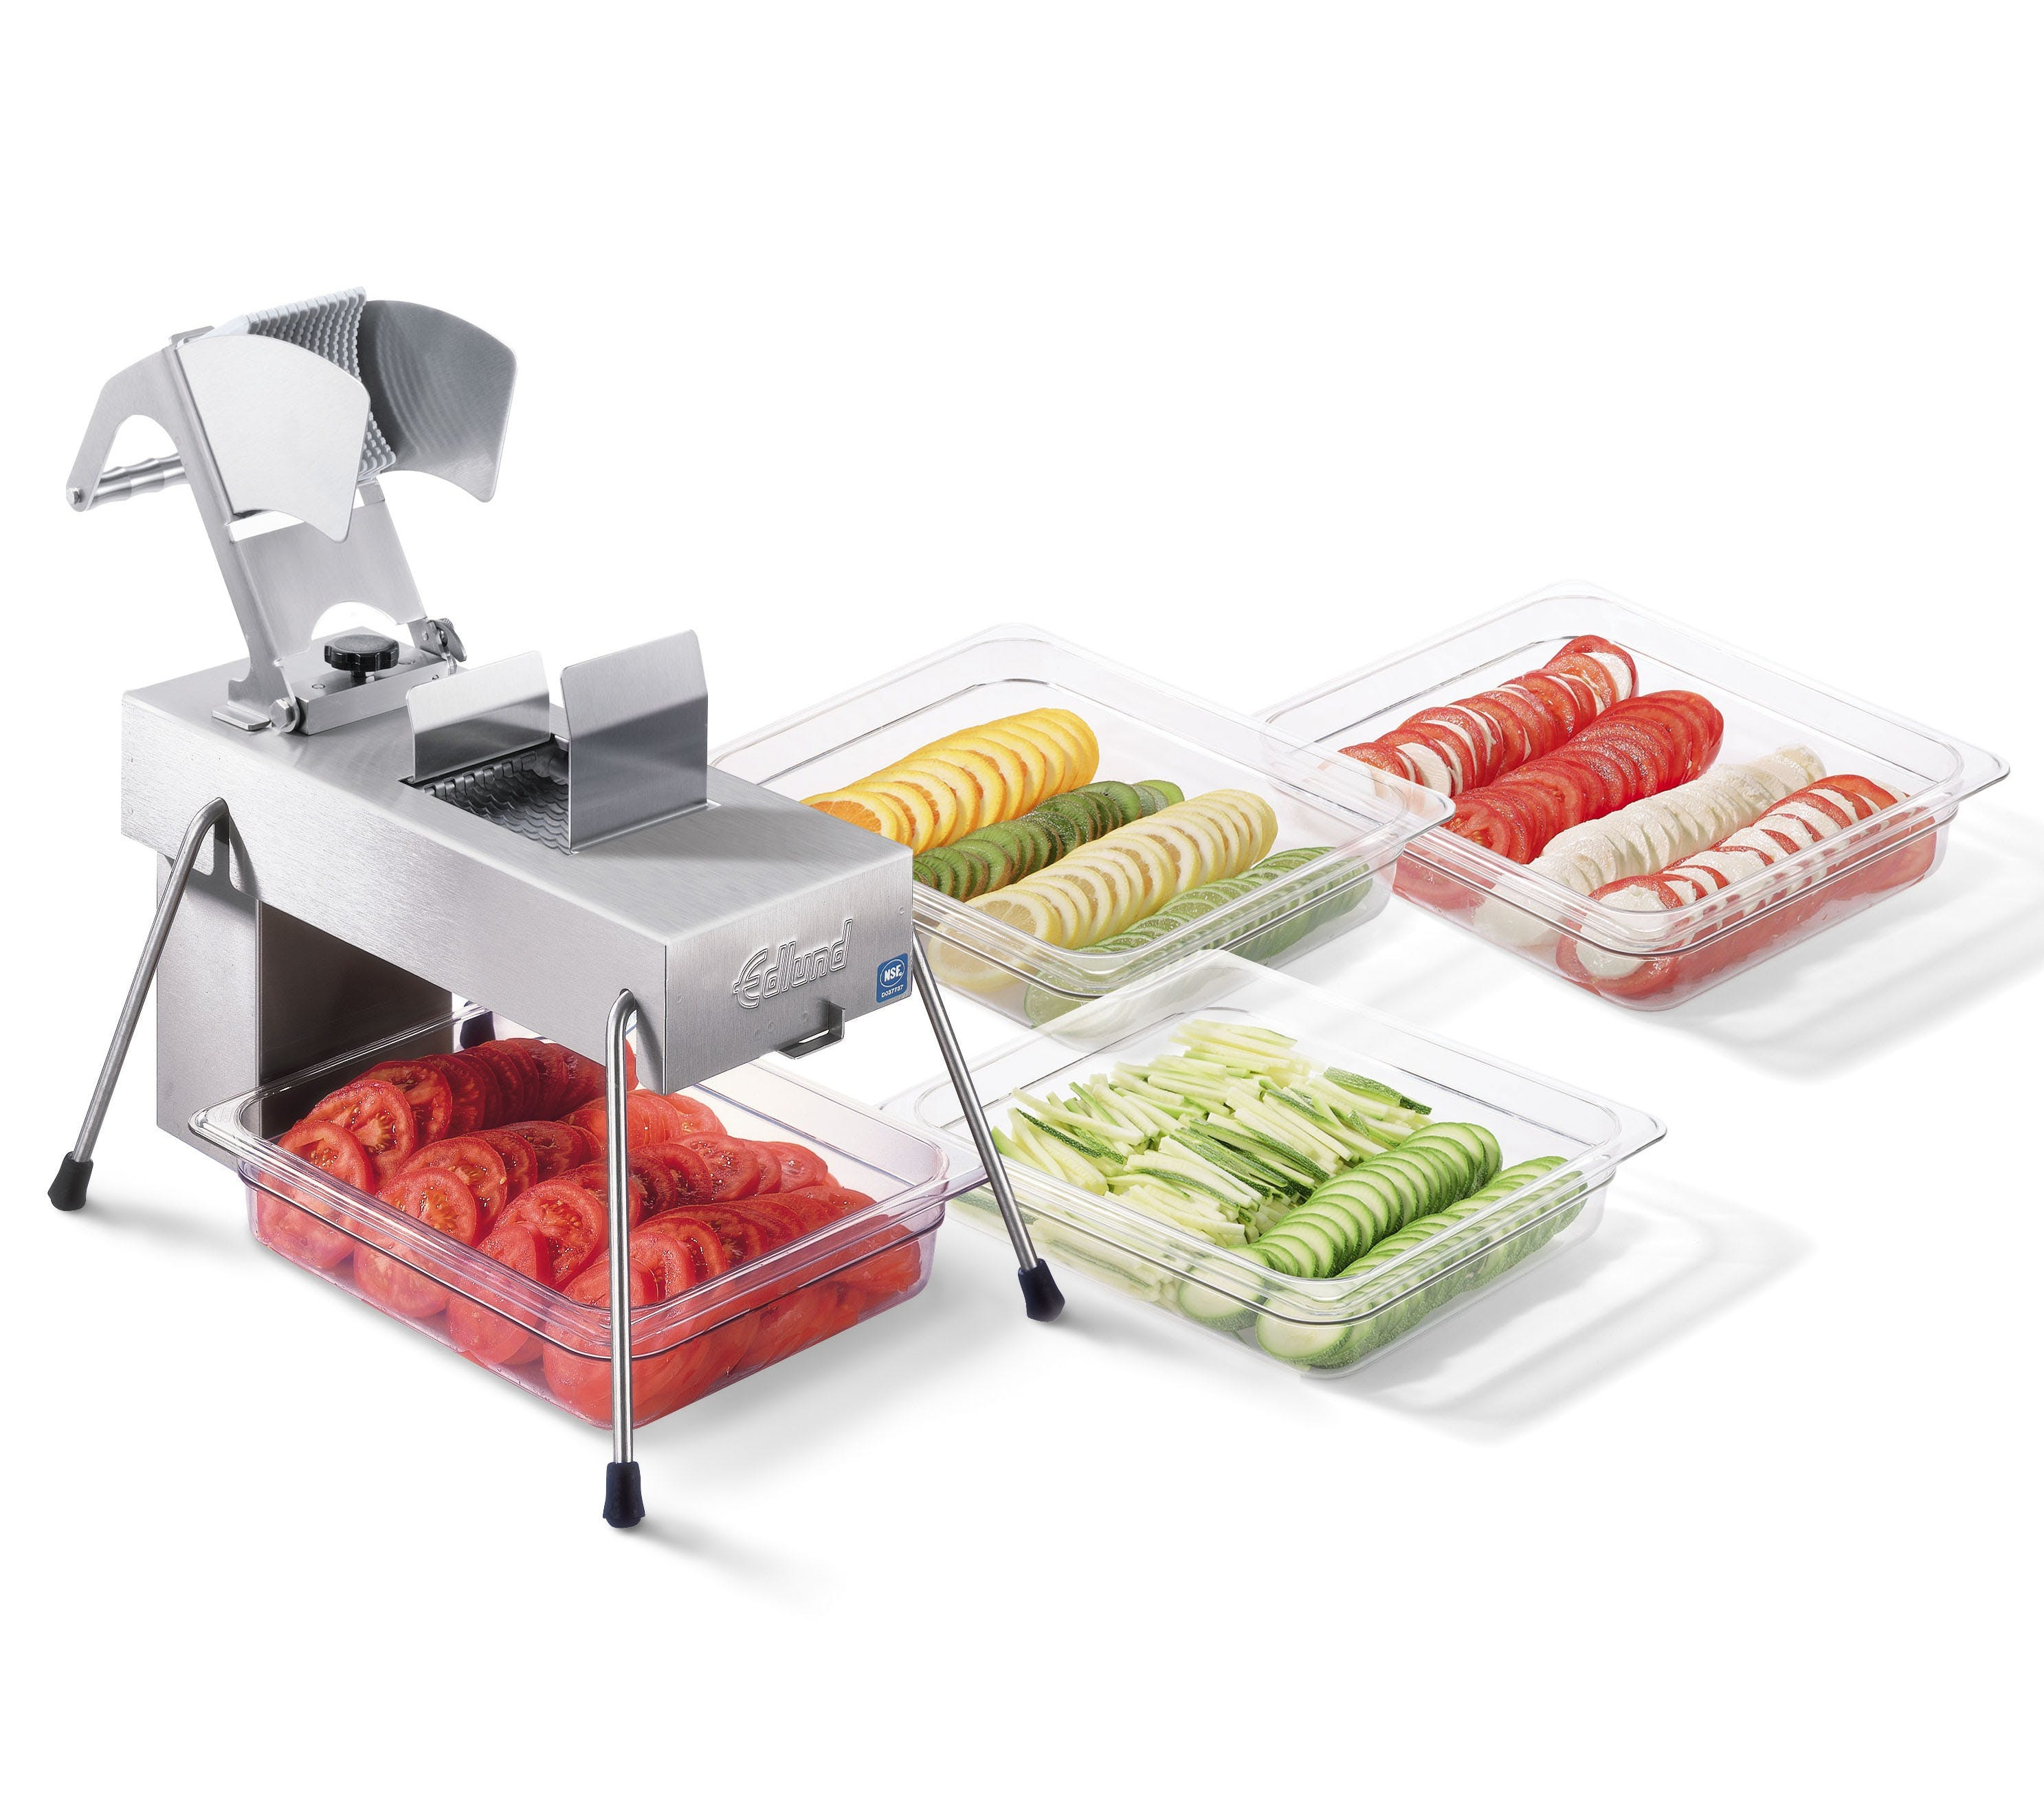 Edlund 358/115V Electric Fruit and Vegetable Slicer W/ 3/8 In Blade Assembly Vegetable cutter and dicer sold by Mission Restaurant Supply